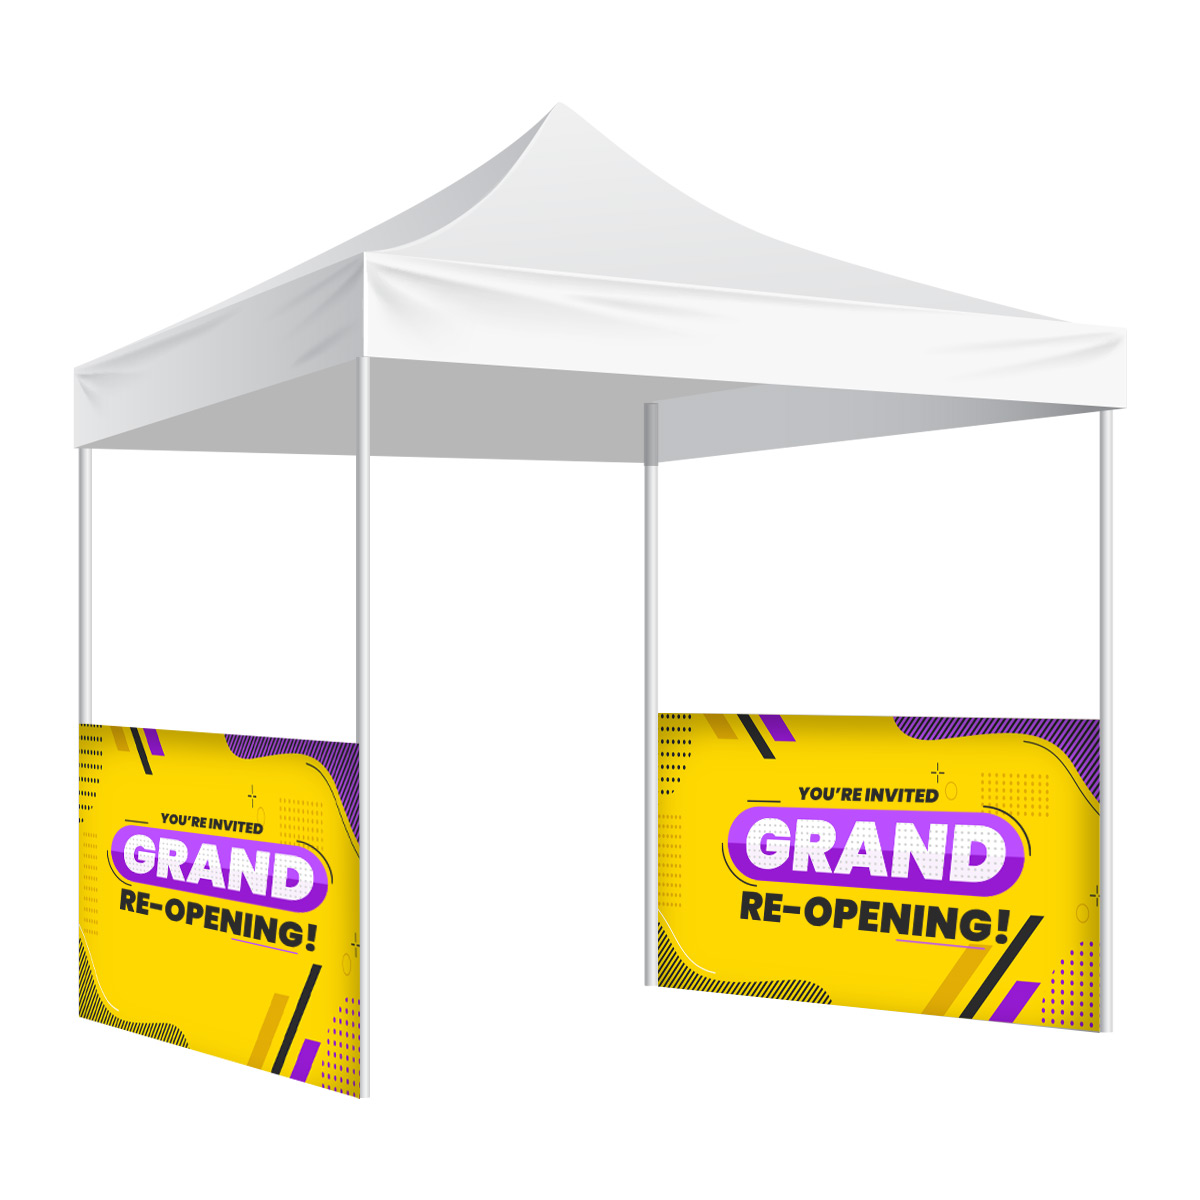 Custom Printed Half Wall Or Side Panel For Canopy Tent